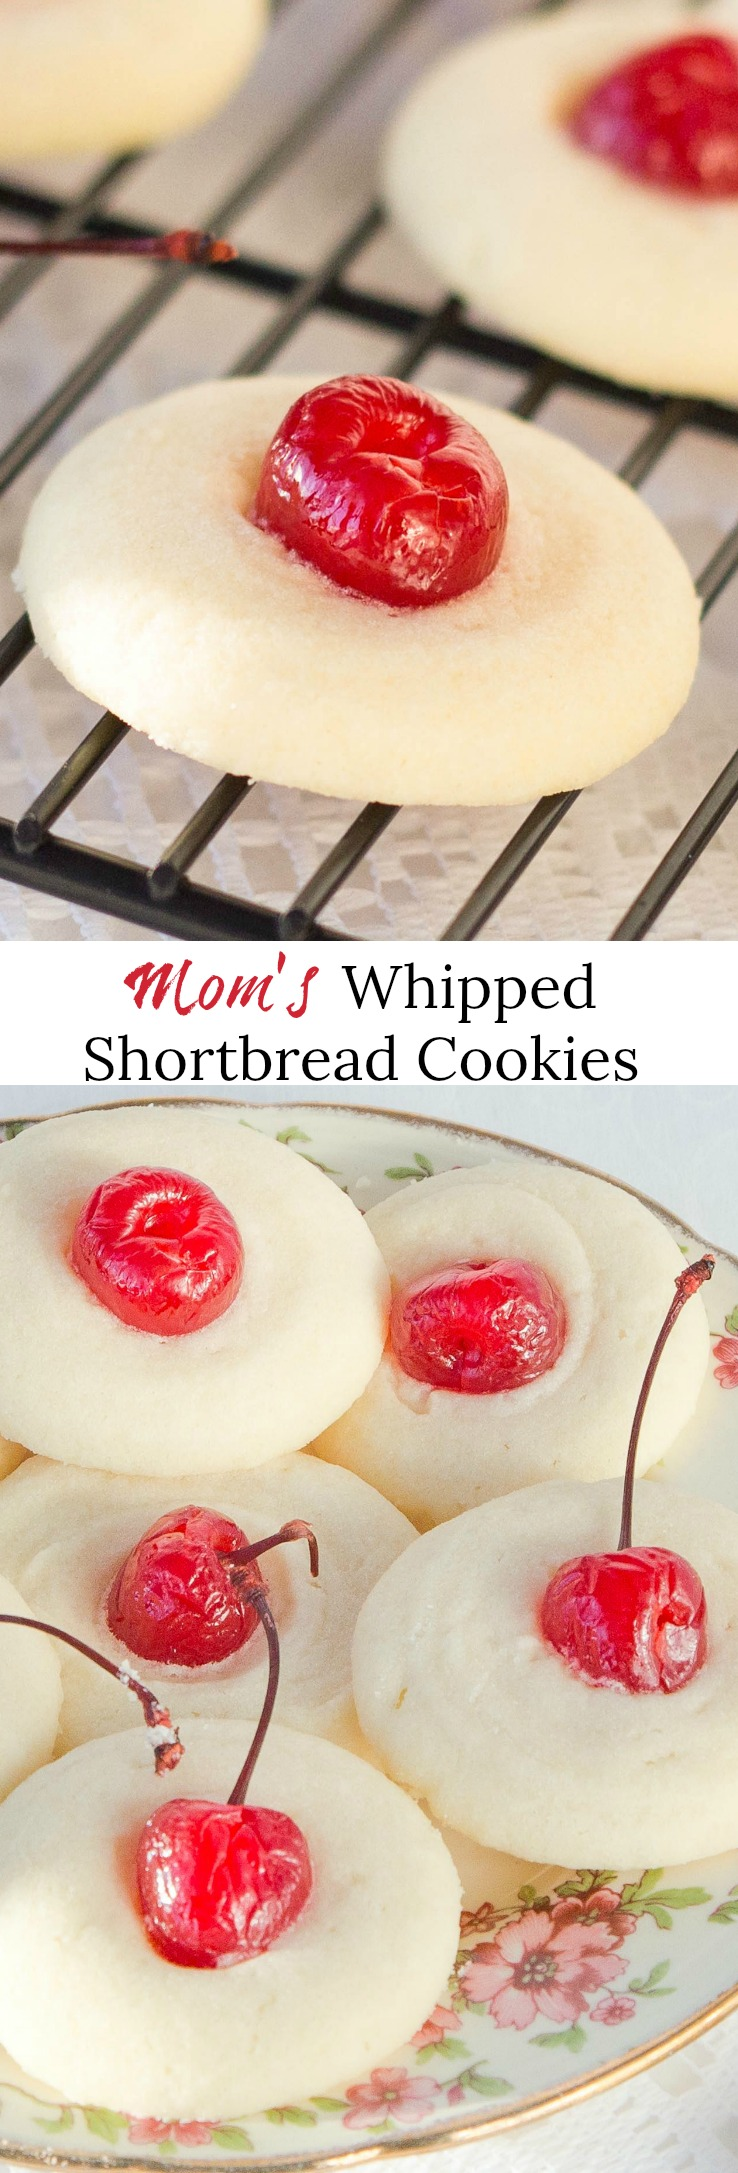 Mom's Whipped Shortbread Cookies